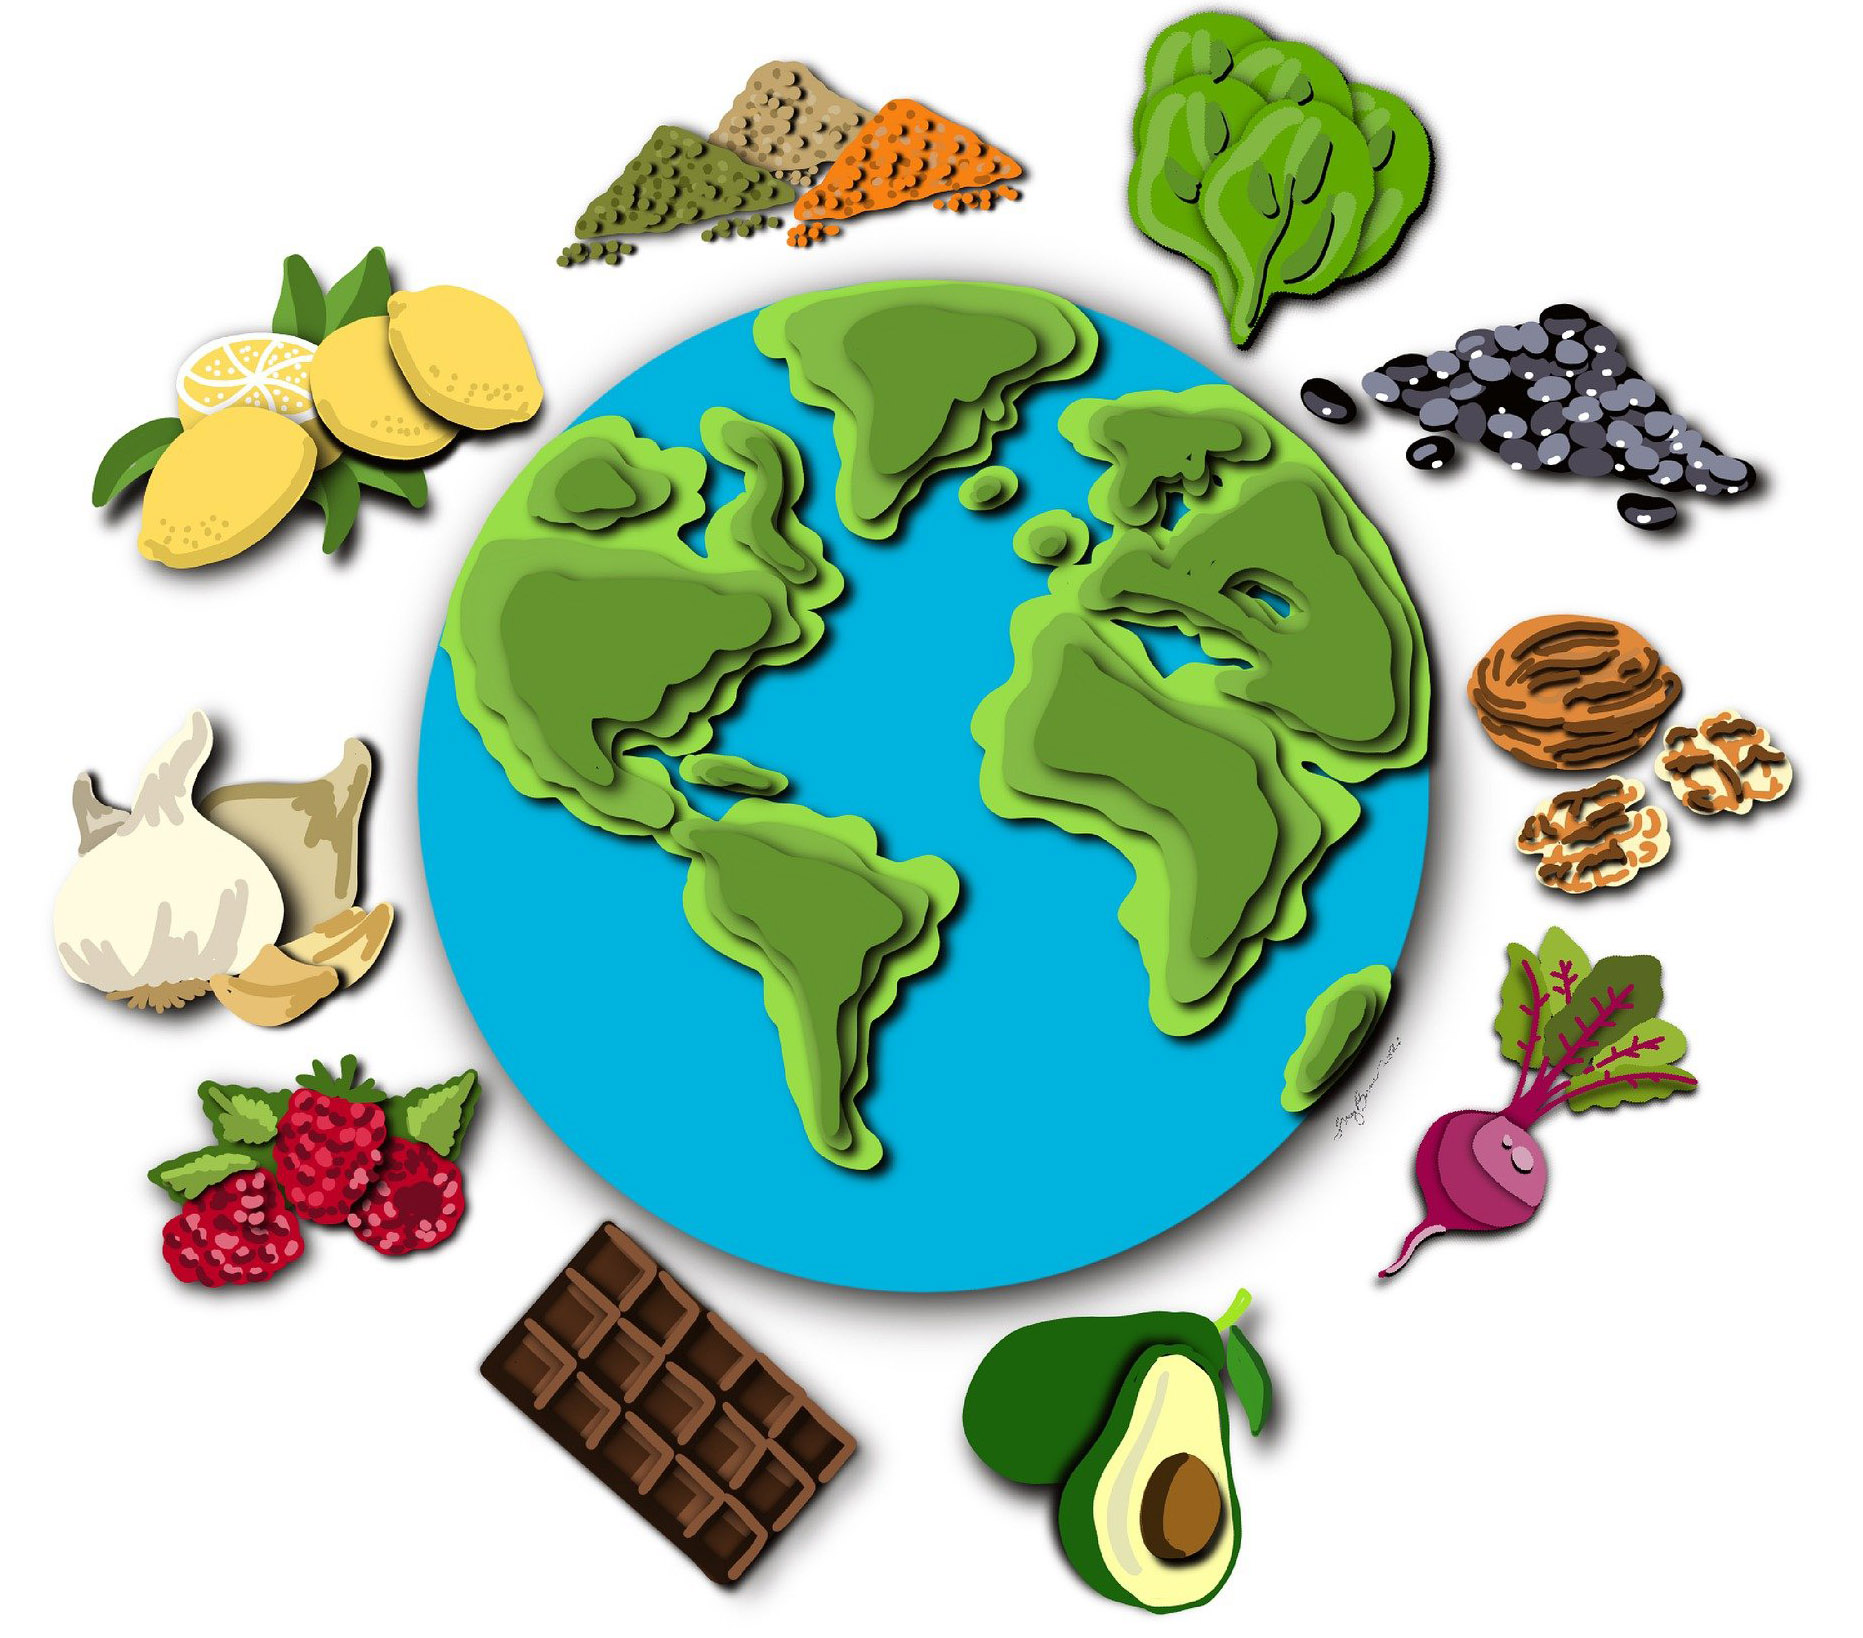 CONSCIOUS  CONSUMPTION CHANGING  FOOD  SYSTEMS